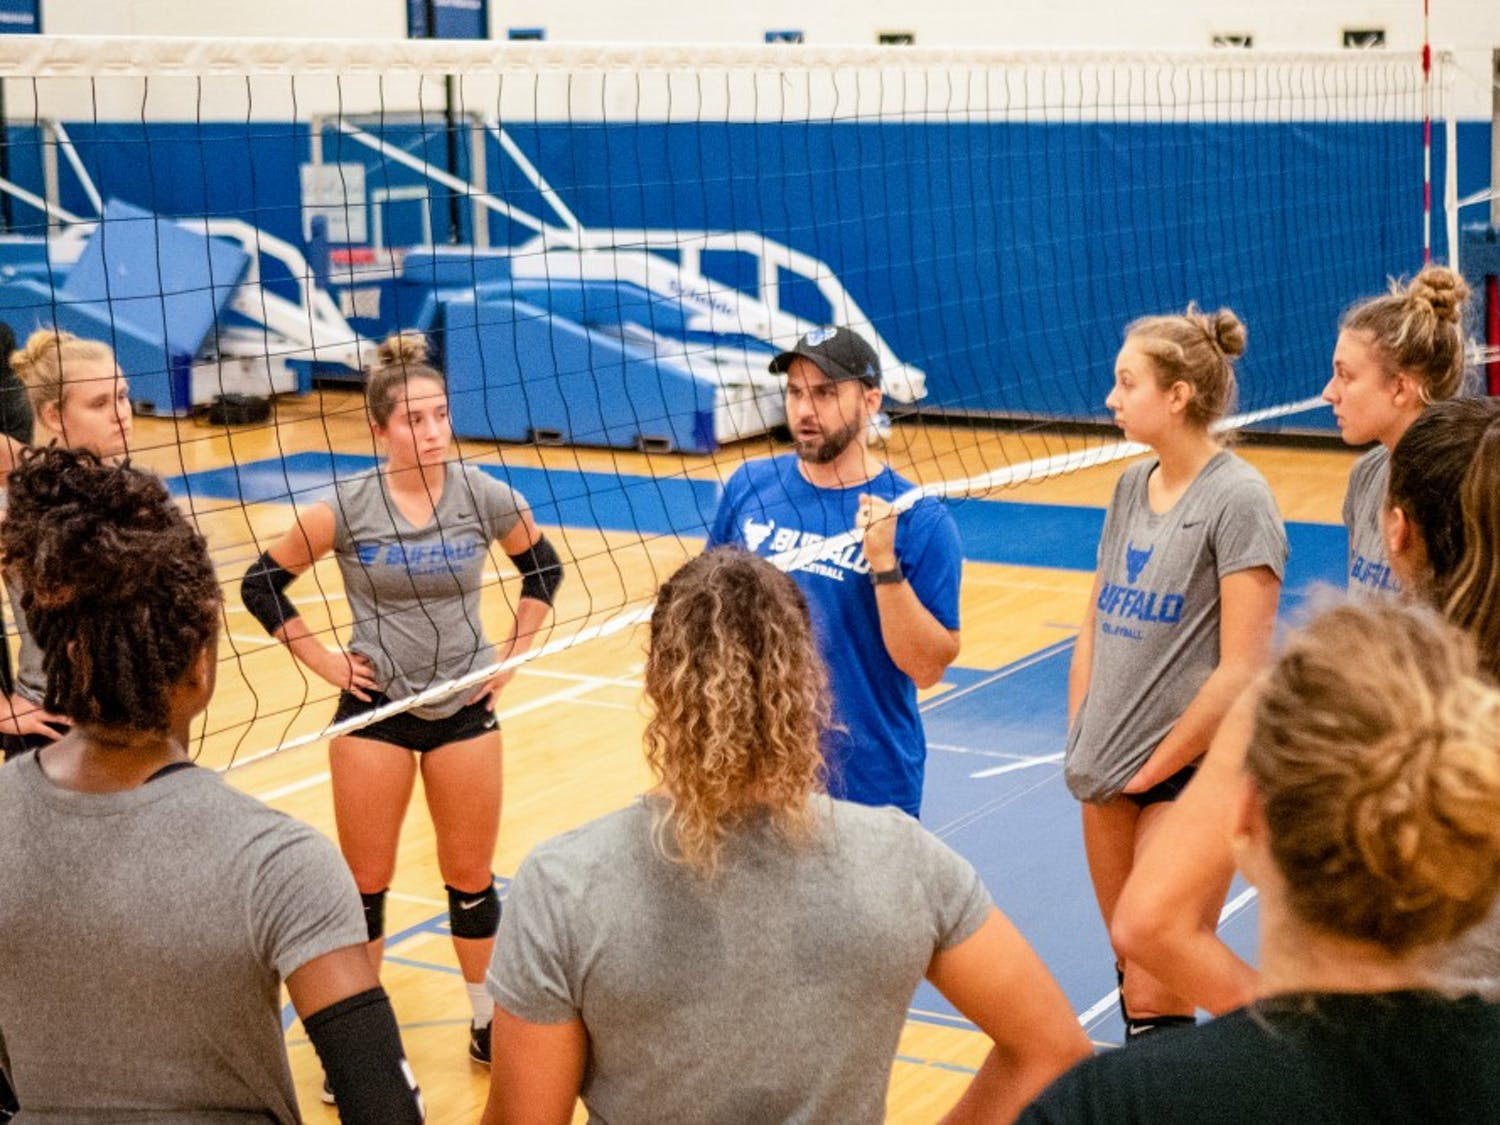 Coach Smith instructing the volleyball team during a practice at Alumni Arena.